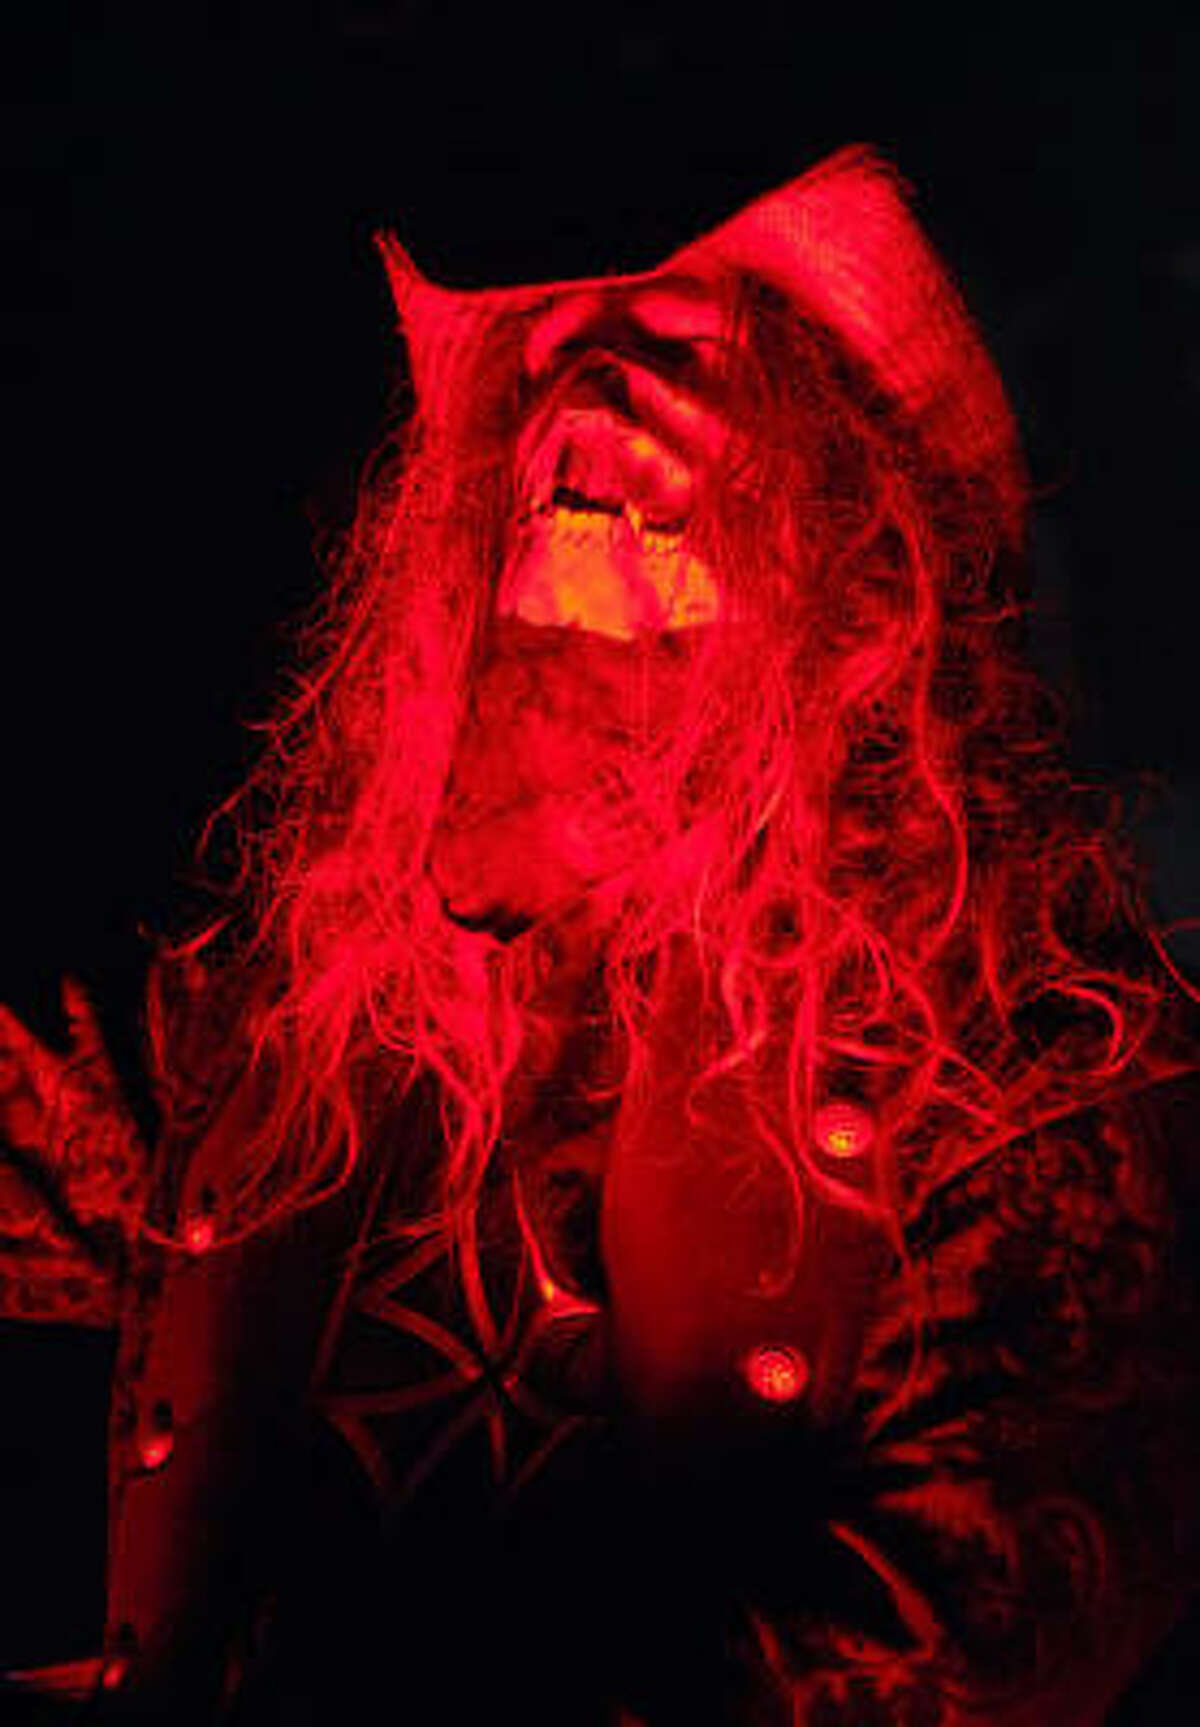 Rob Zombie tears up the stage in Houston at the Verizon Wireless Theater.